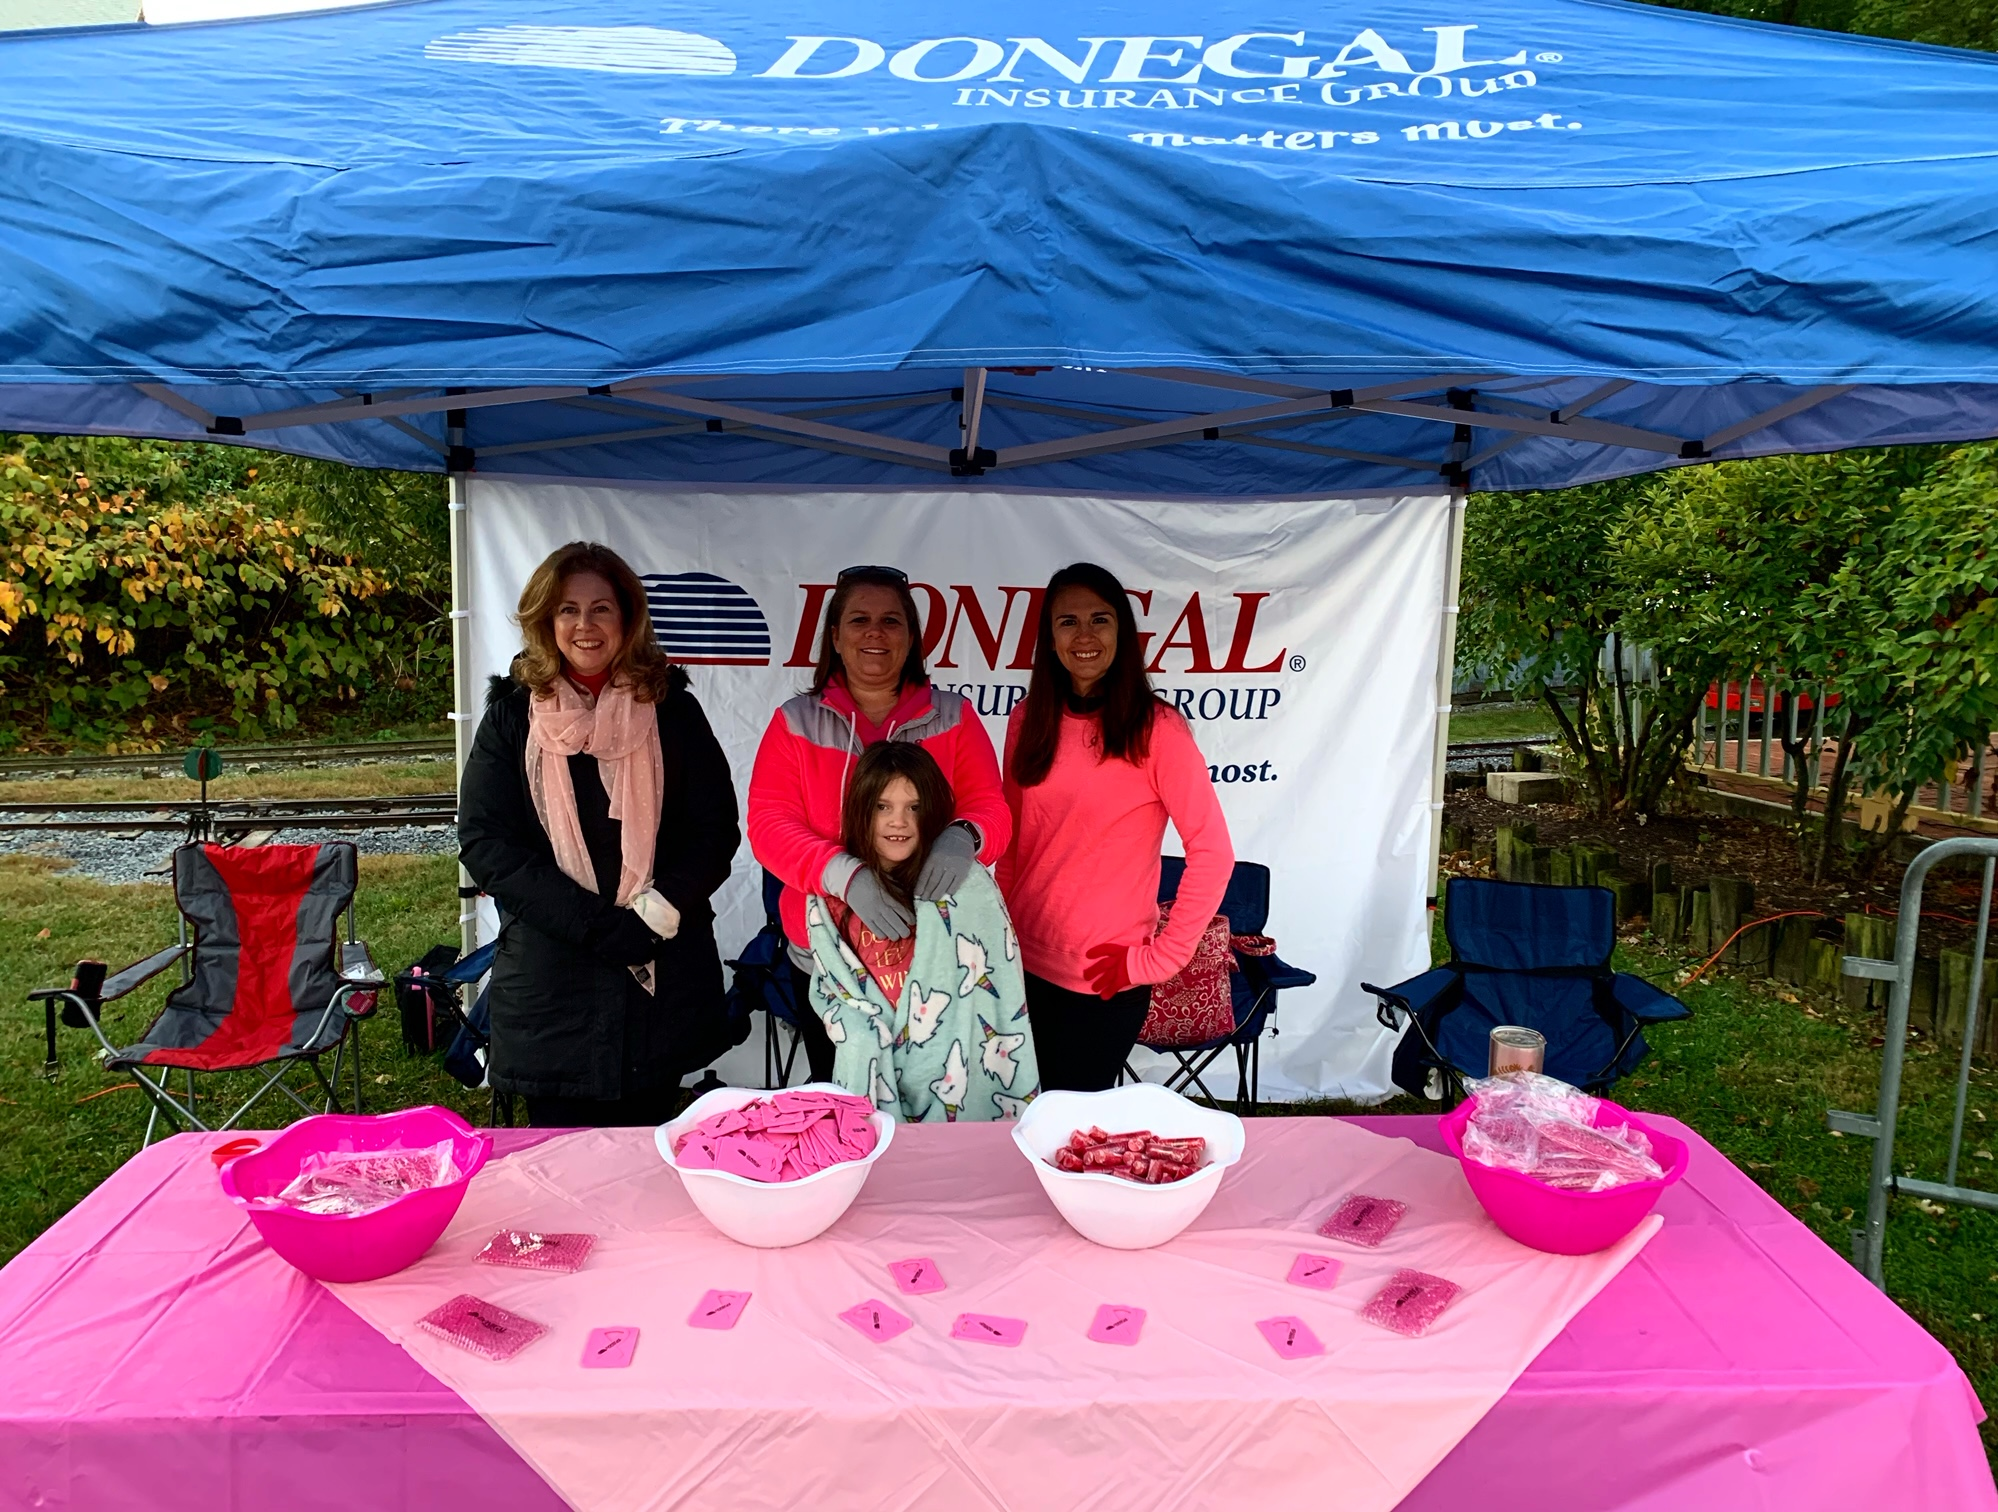 Donegal Employees Volunteering at the Breast Cancer Walk